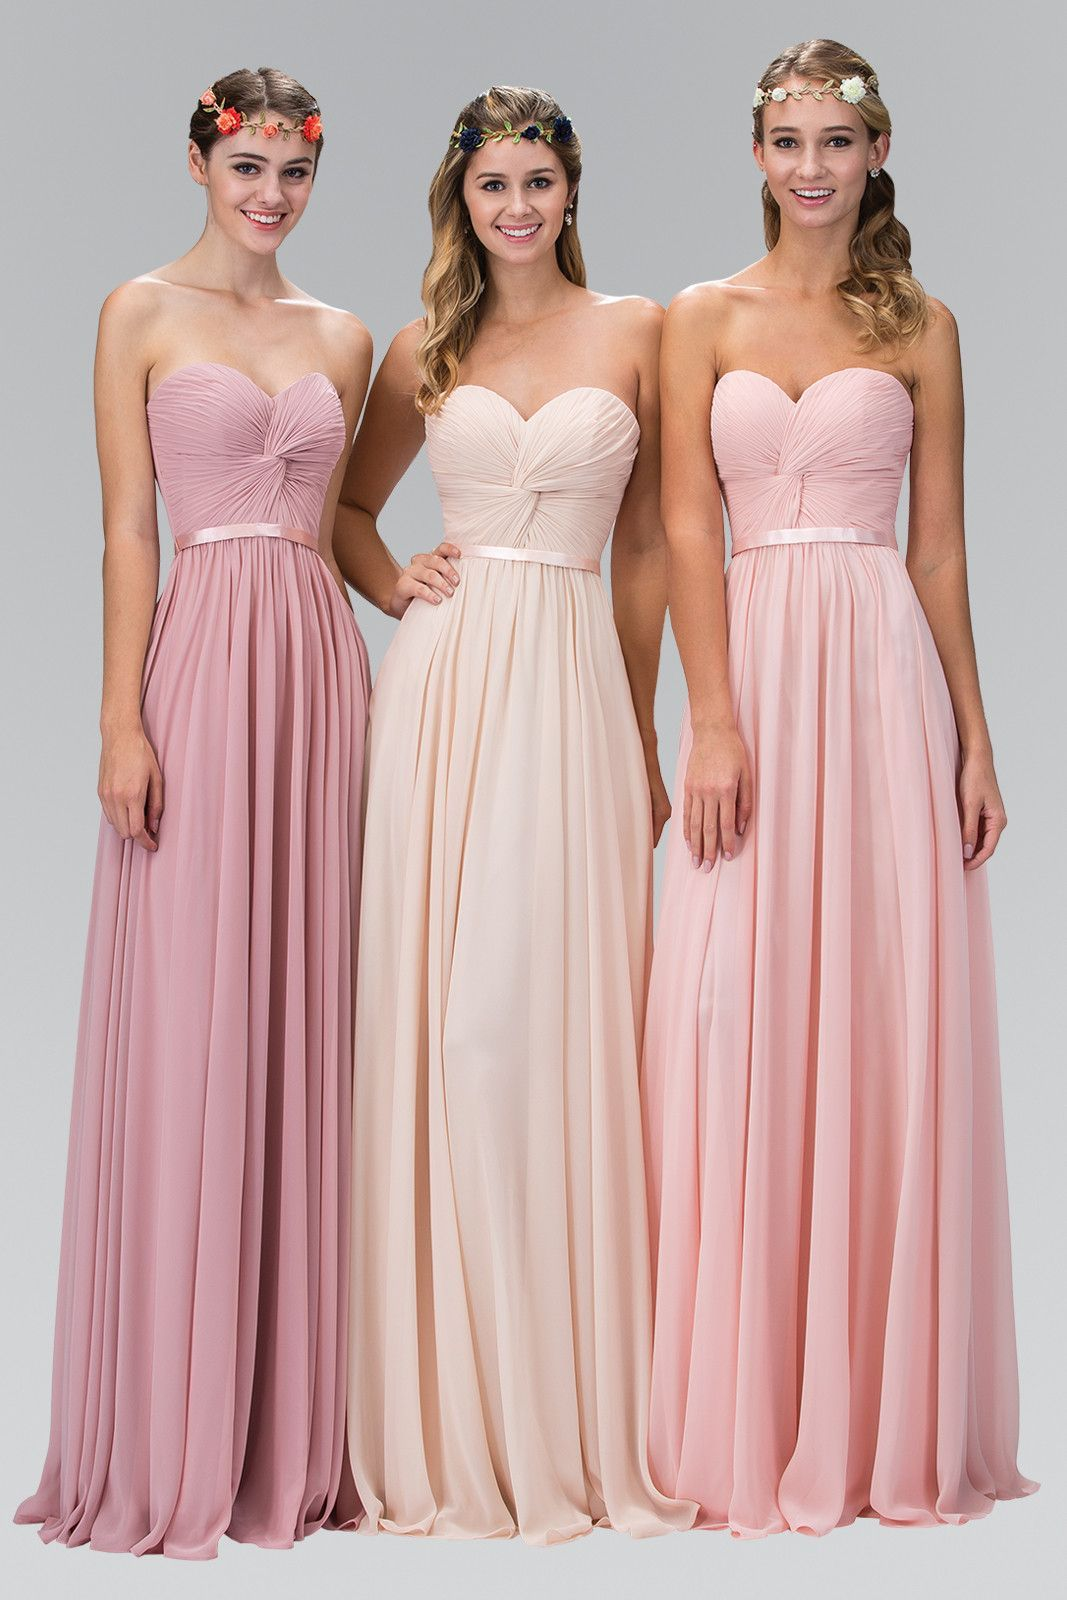 Floor length twisted knot front chiffon floor length bridesmaid floor length twisted knot front chiffon floor length bridesmaid dress 4 pastel colors ombrellifo Image collections